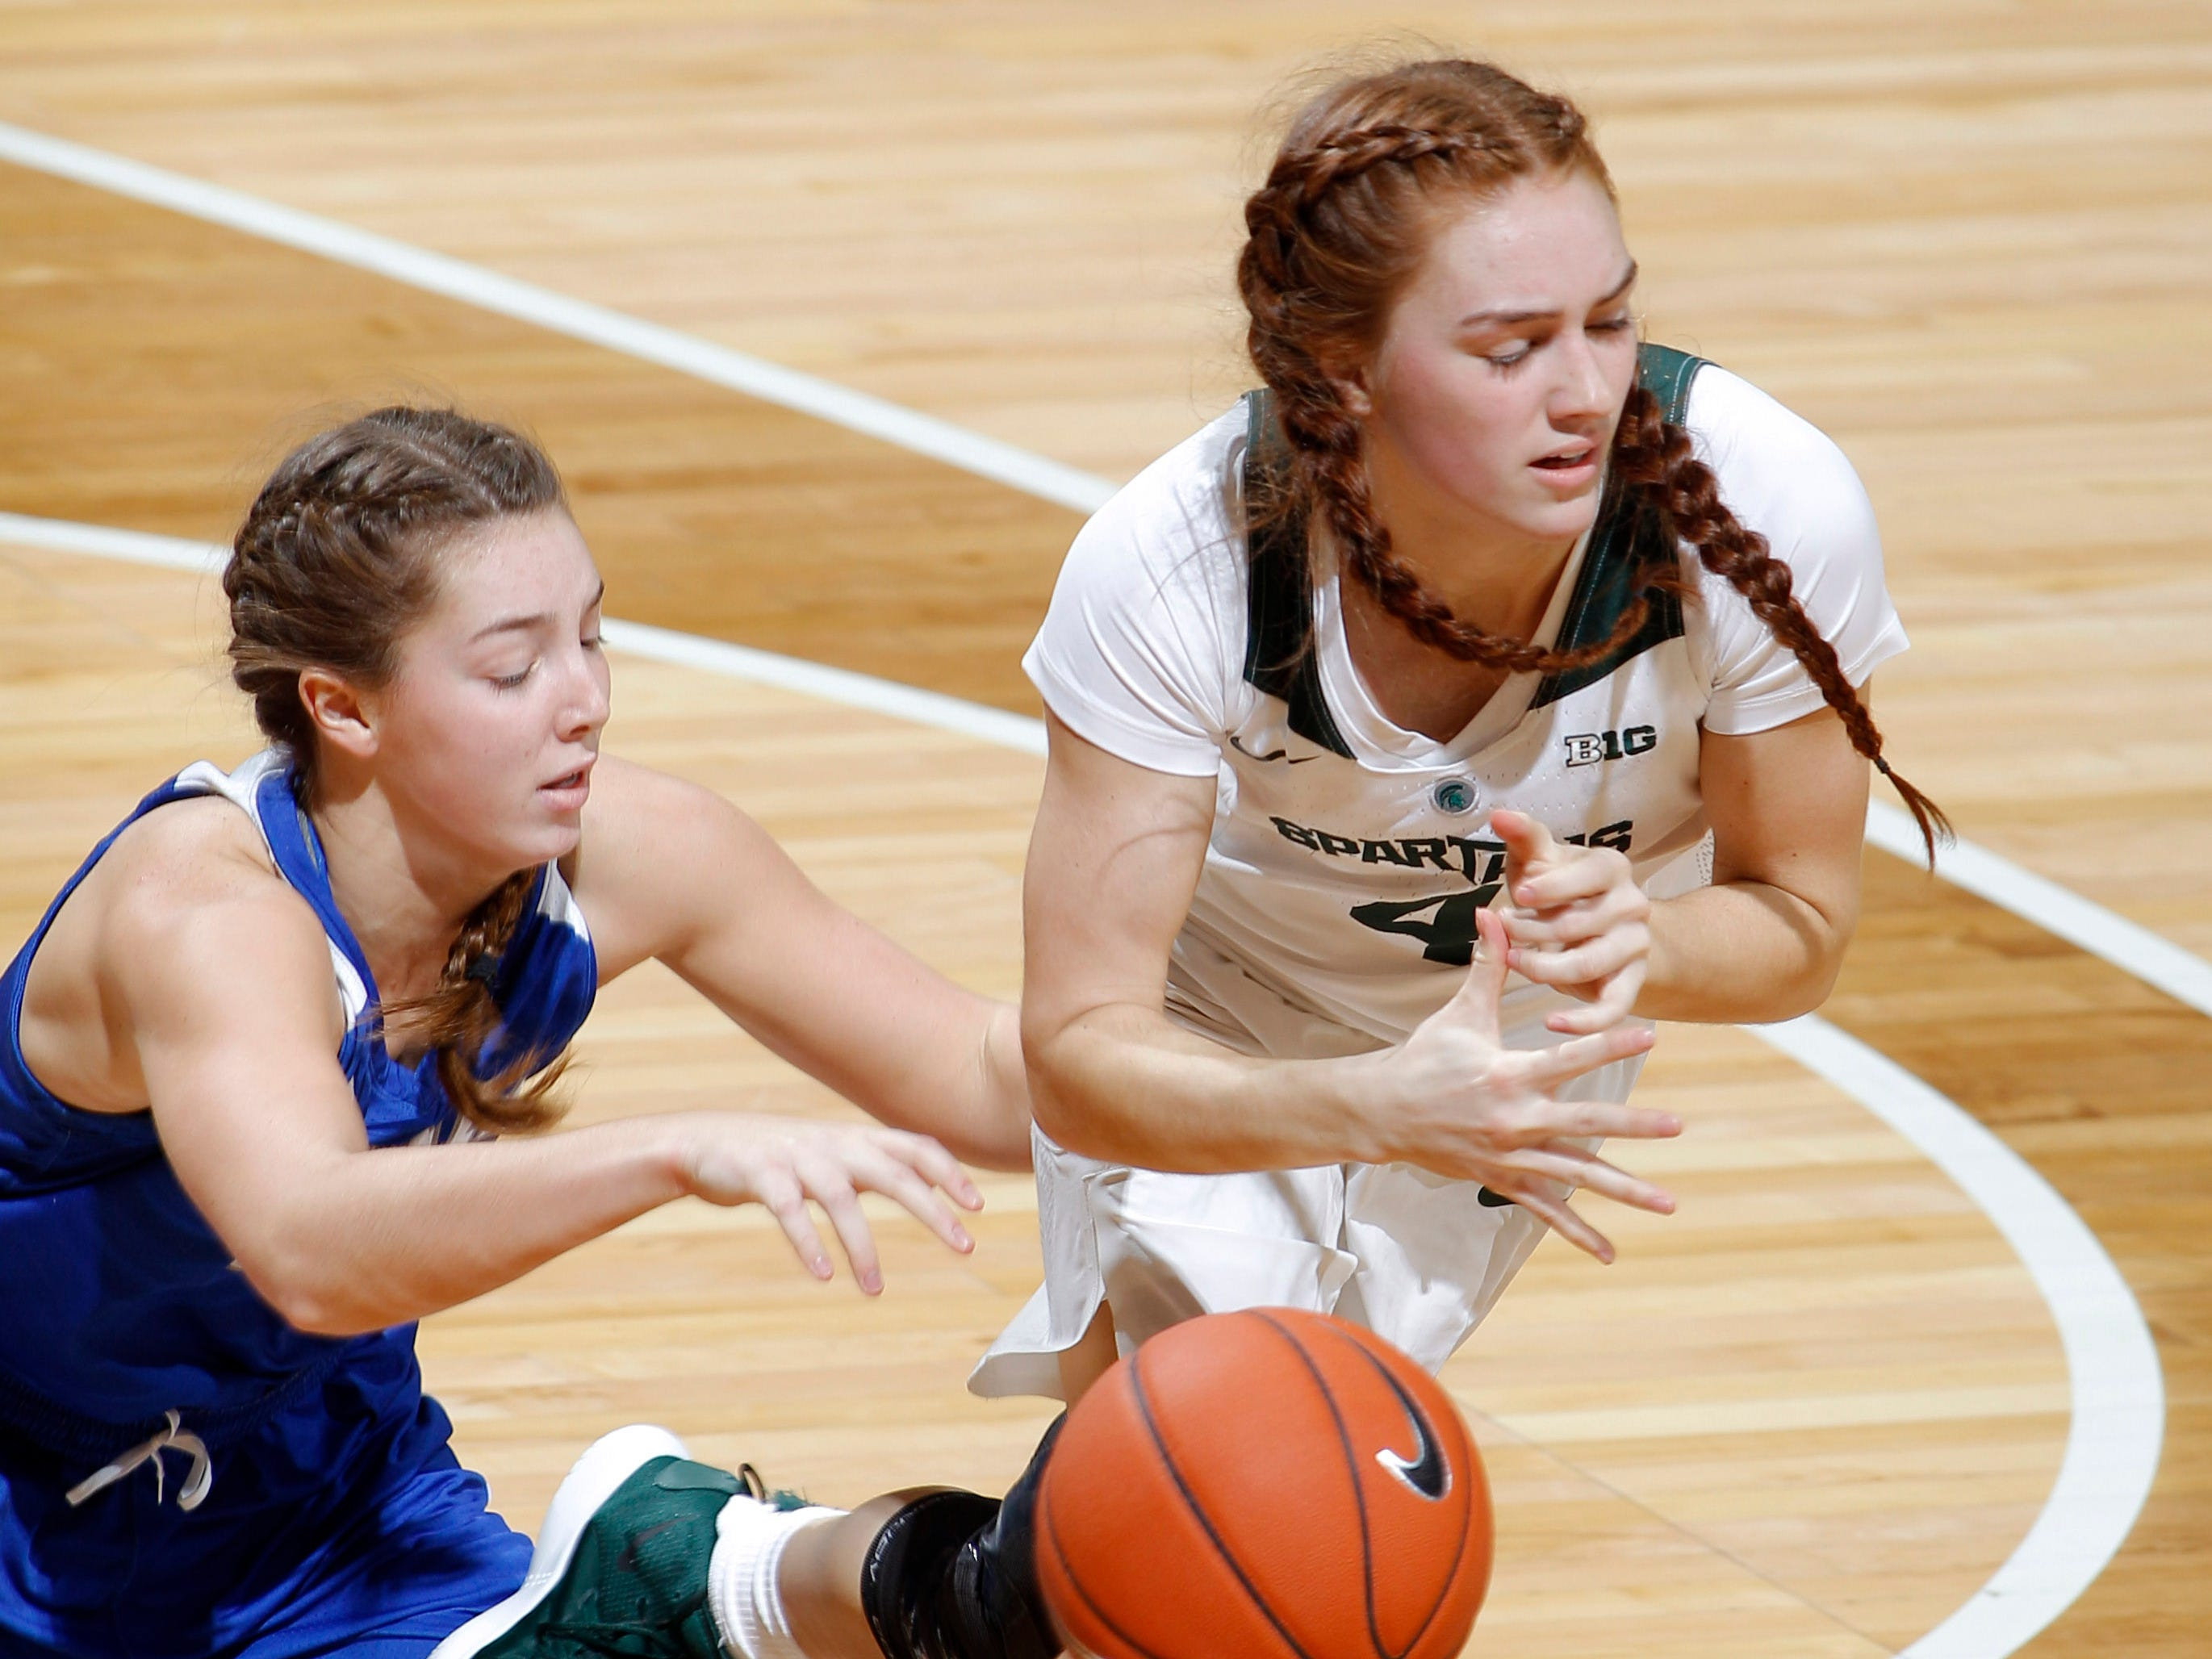 Michigan State's Taryn McCutcheon, right, and Hillsdale's Sydney Anderson battle for the ball, Thursday, Nov. 1, 2018, in East Lansing, Mich.